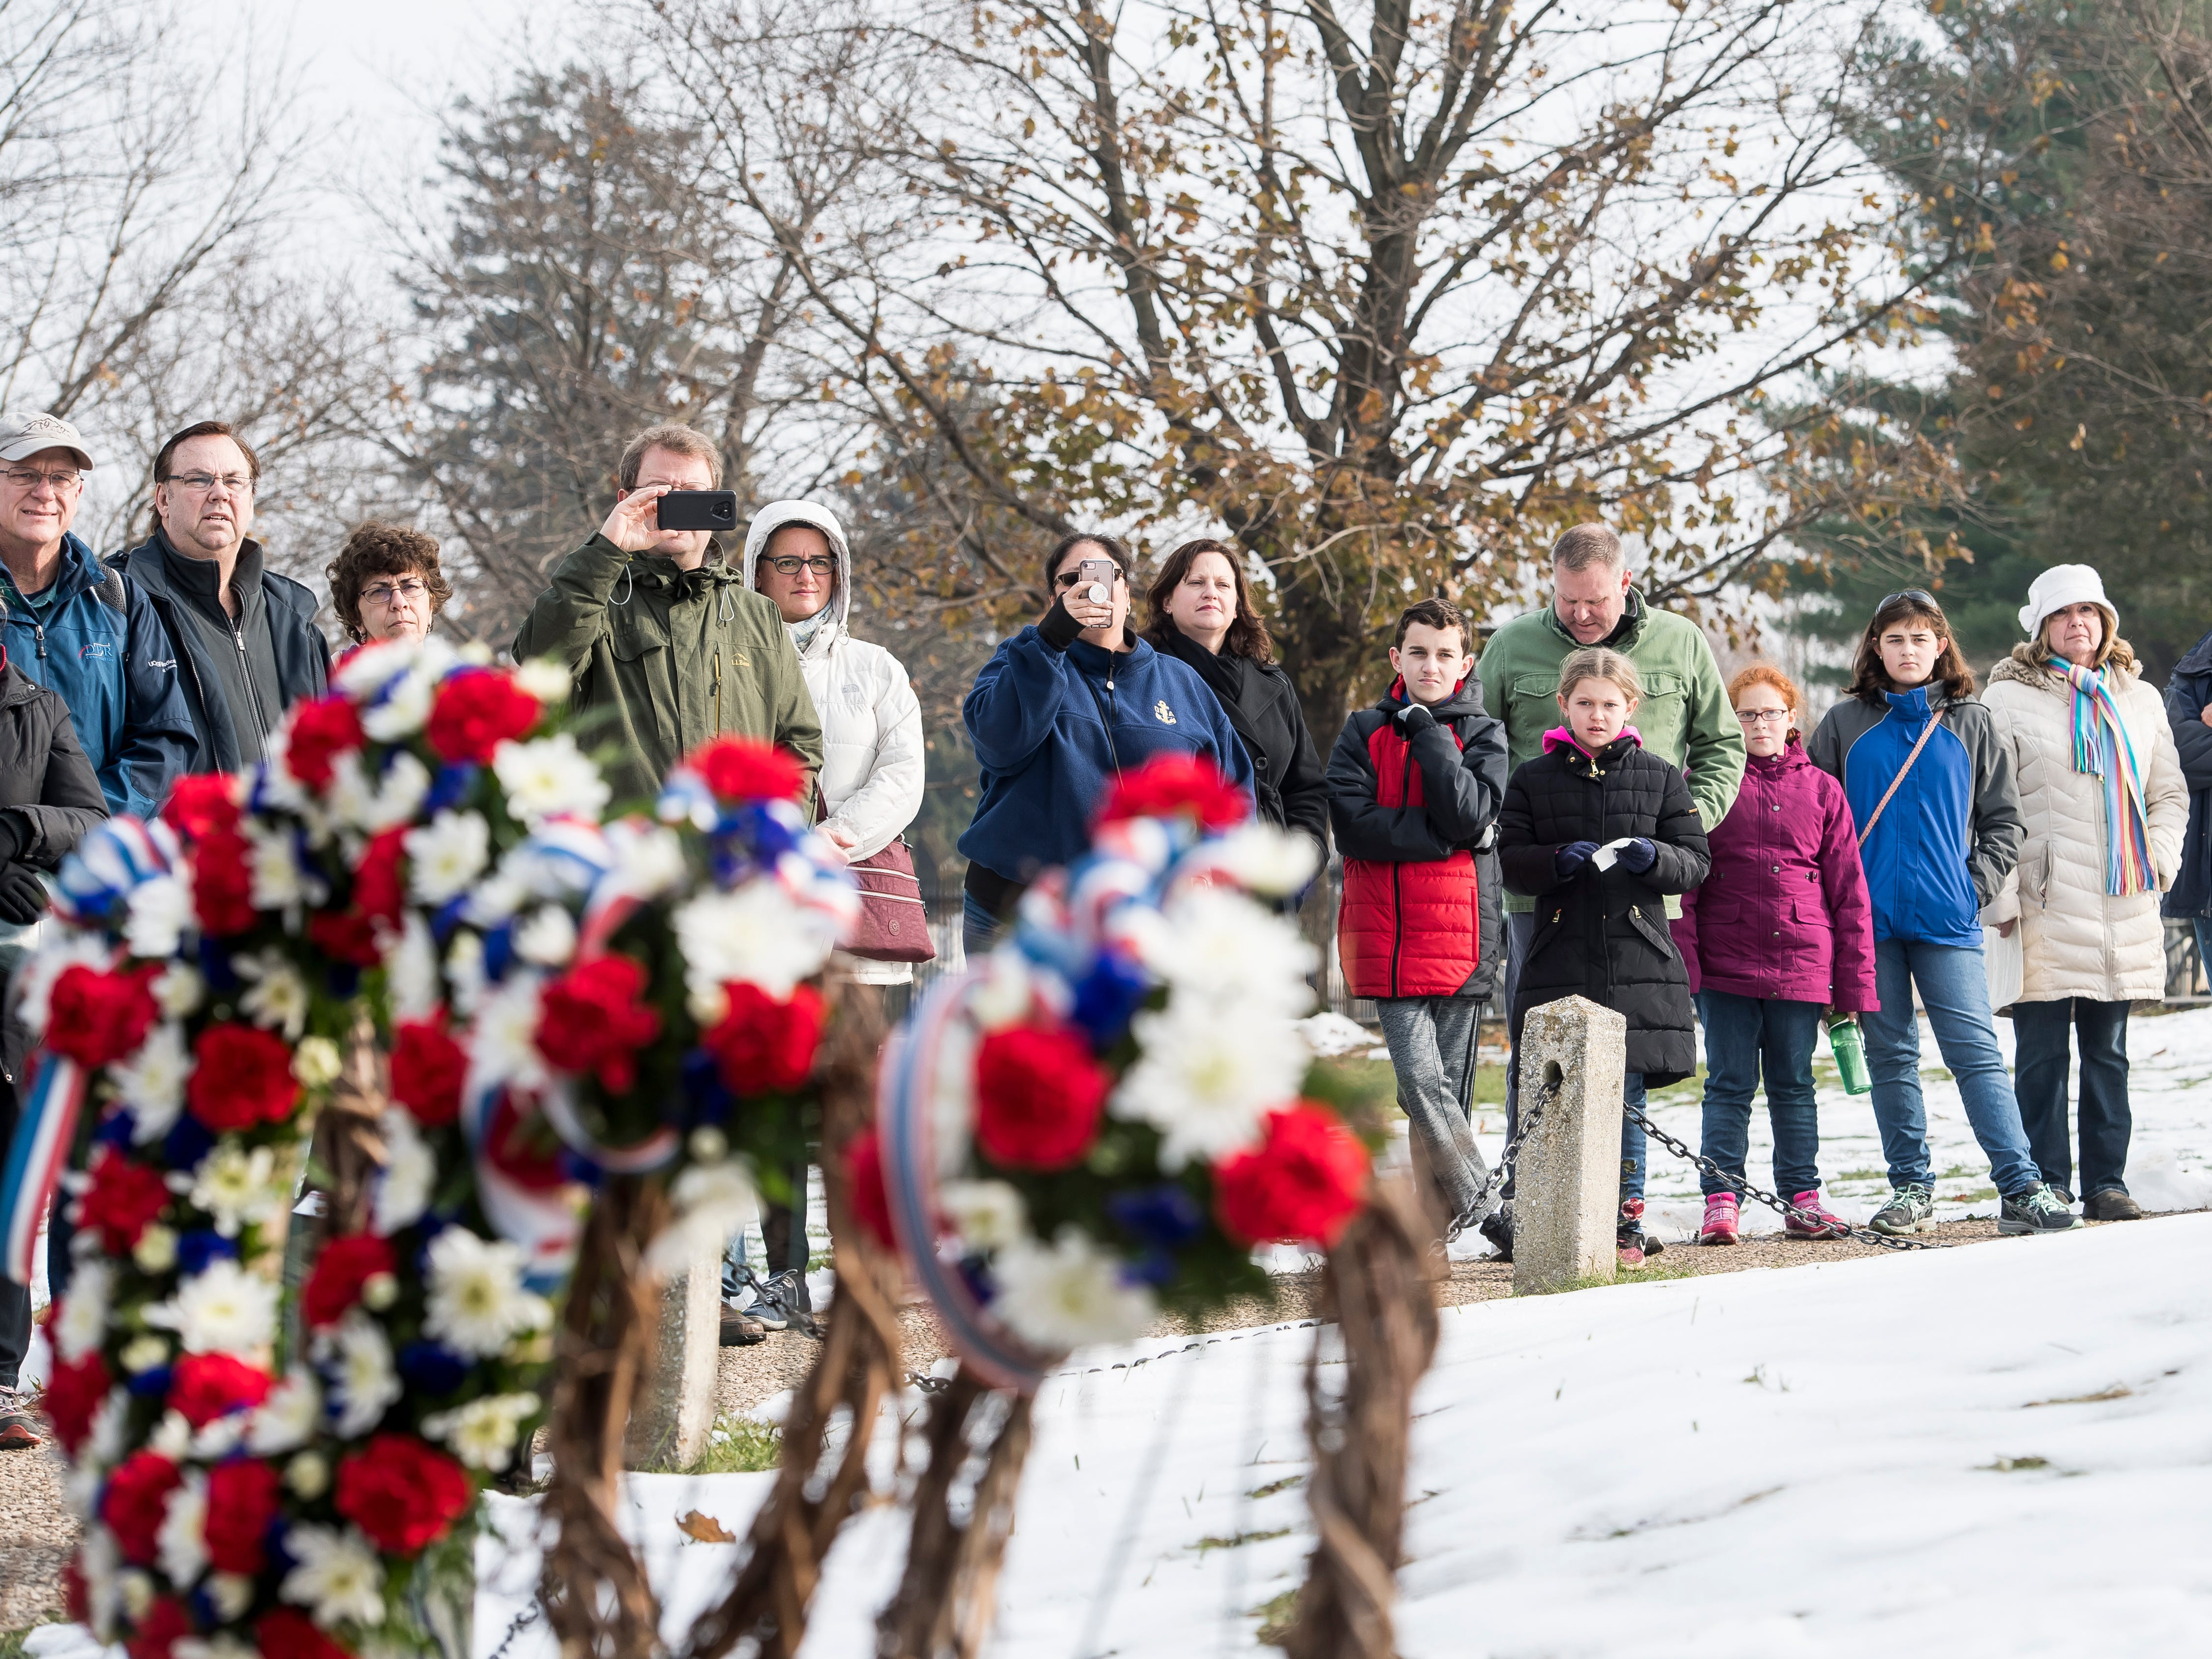 People wait for the start of the laying of memorial wreaths ceremony at Soldiers' National Monument in Gettysburg National Cemetery on November, 19, 2018.